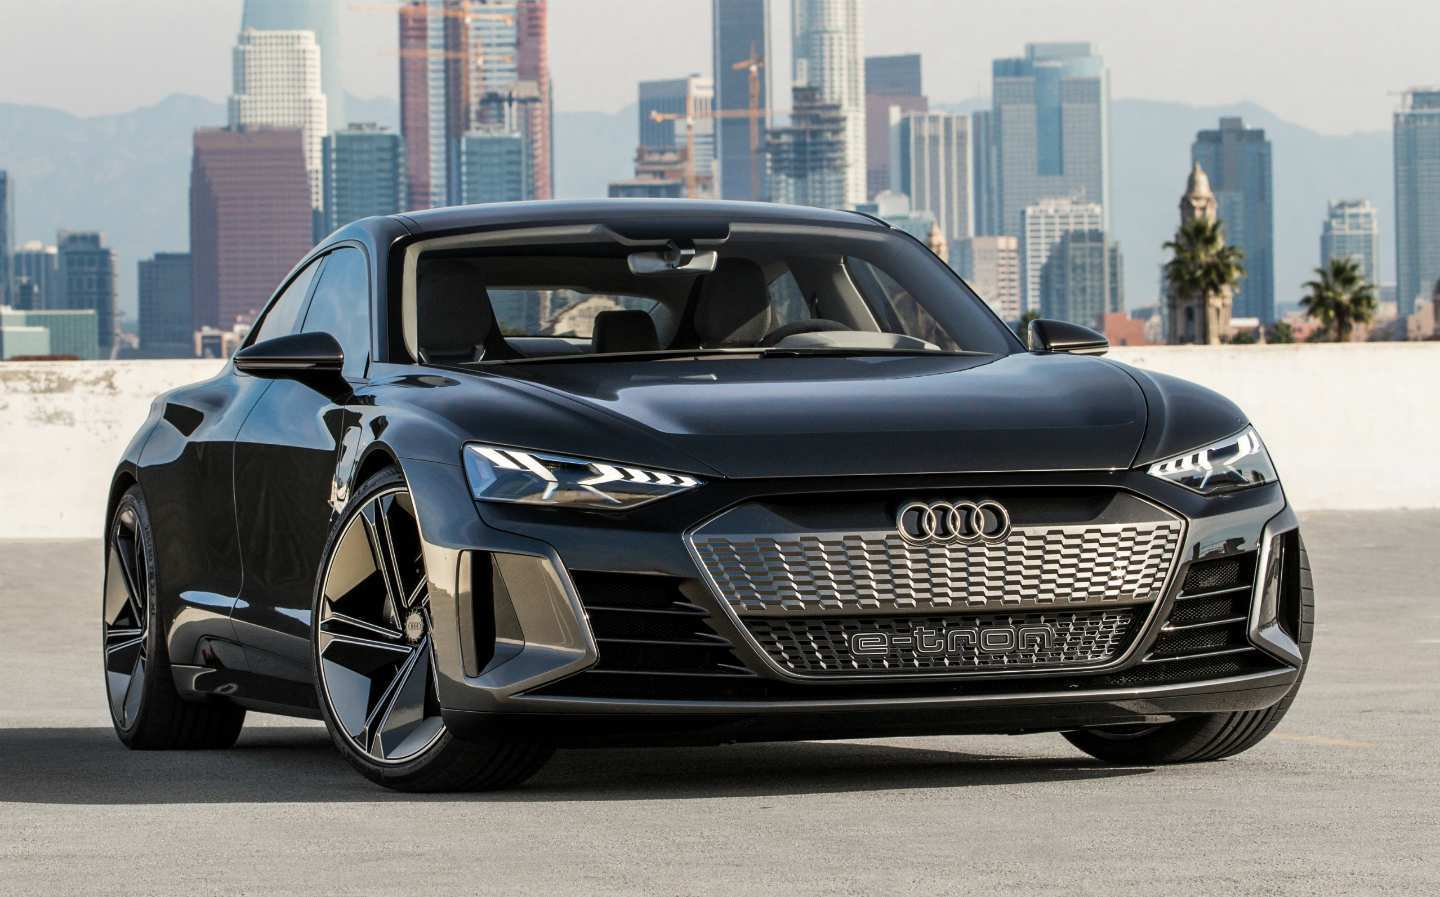 92 All New Audi Electric Vehicles 2020 History